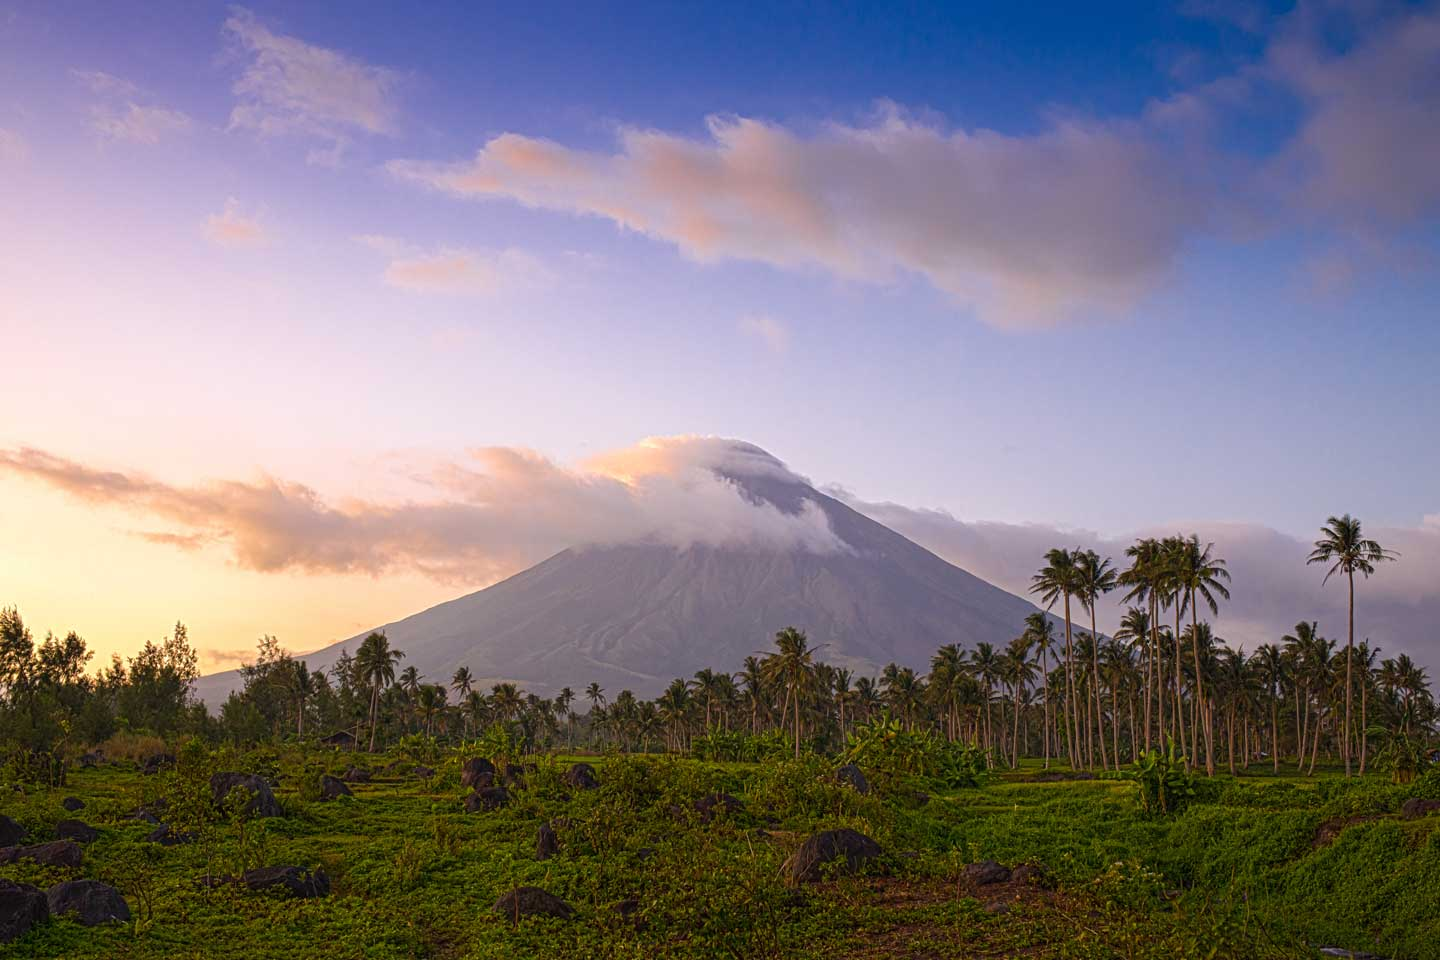 Top Philippine Mountains That You Need To Climb